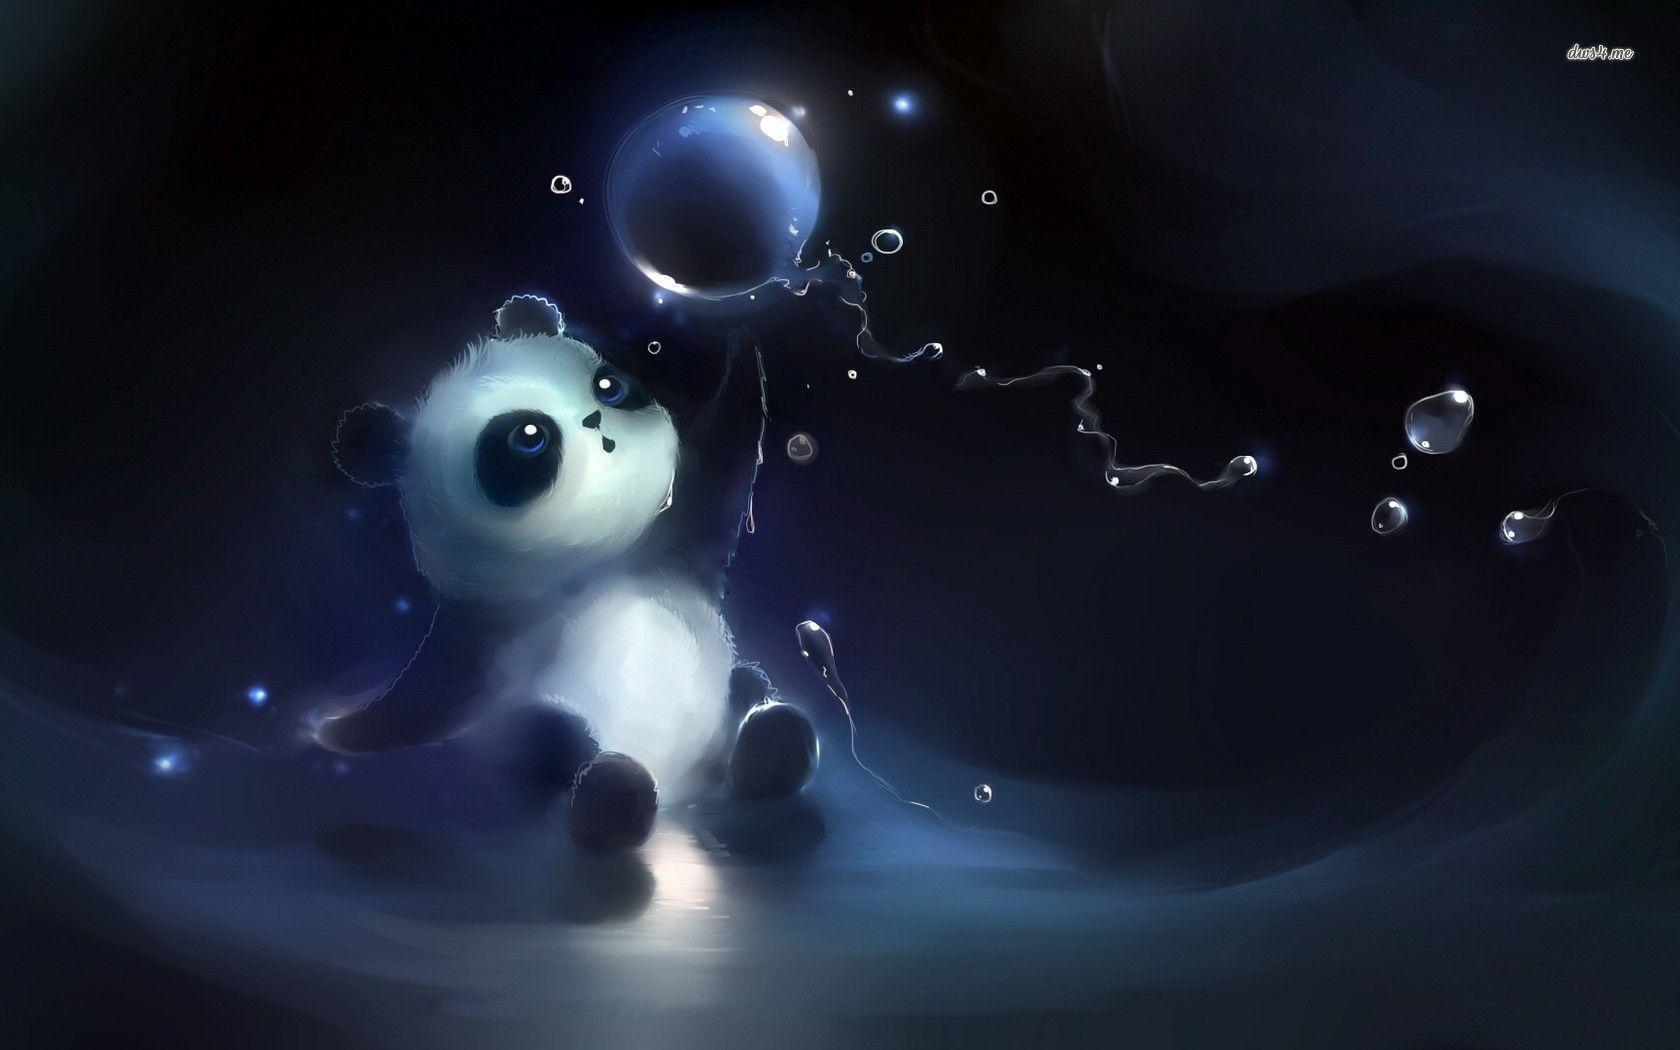 background wallpaper panda - photo #8